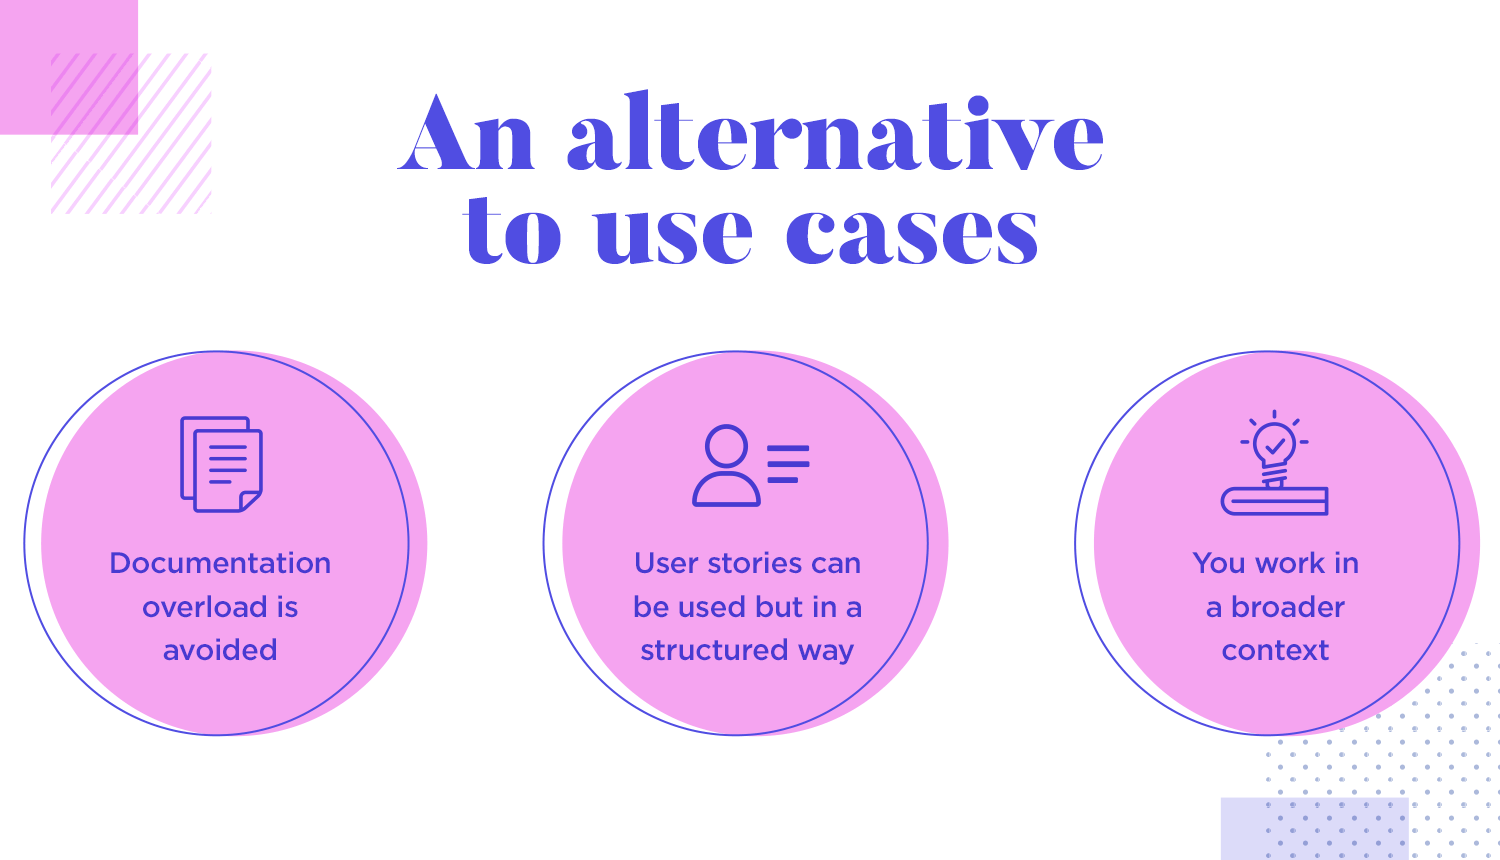 User story mapping is an alternative to use cases